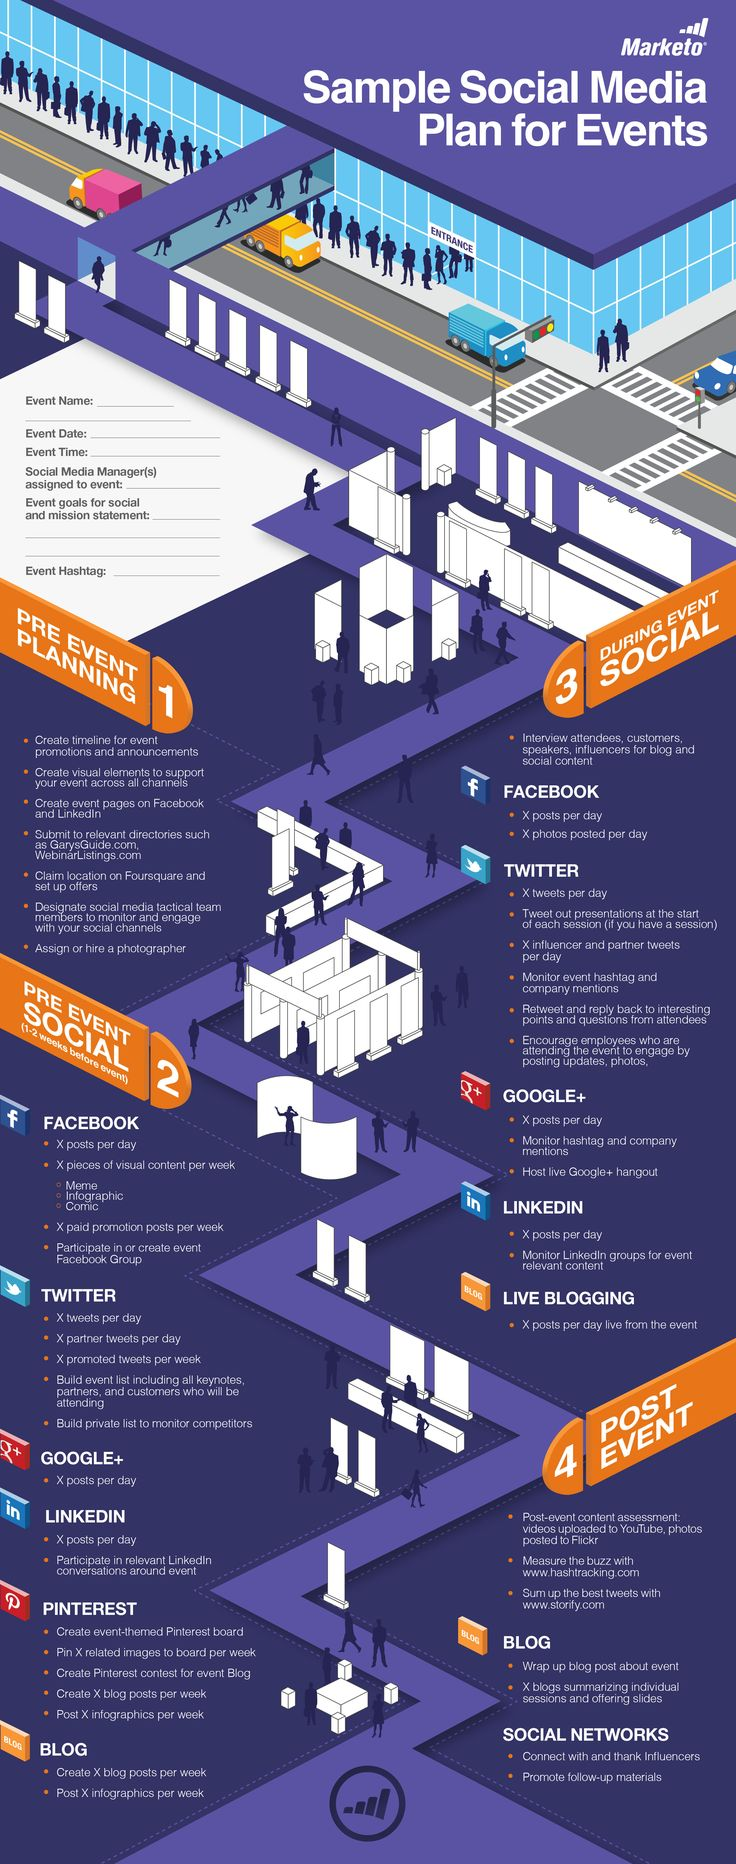 The-Ultimate-Social-Media-Event-Marketing-Checklist-Infographic via @Marketo Inc. Inc.